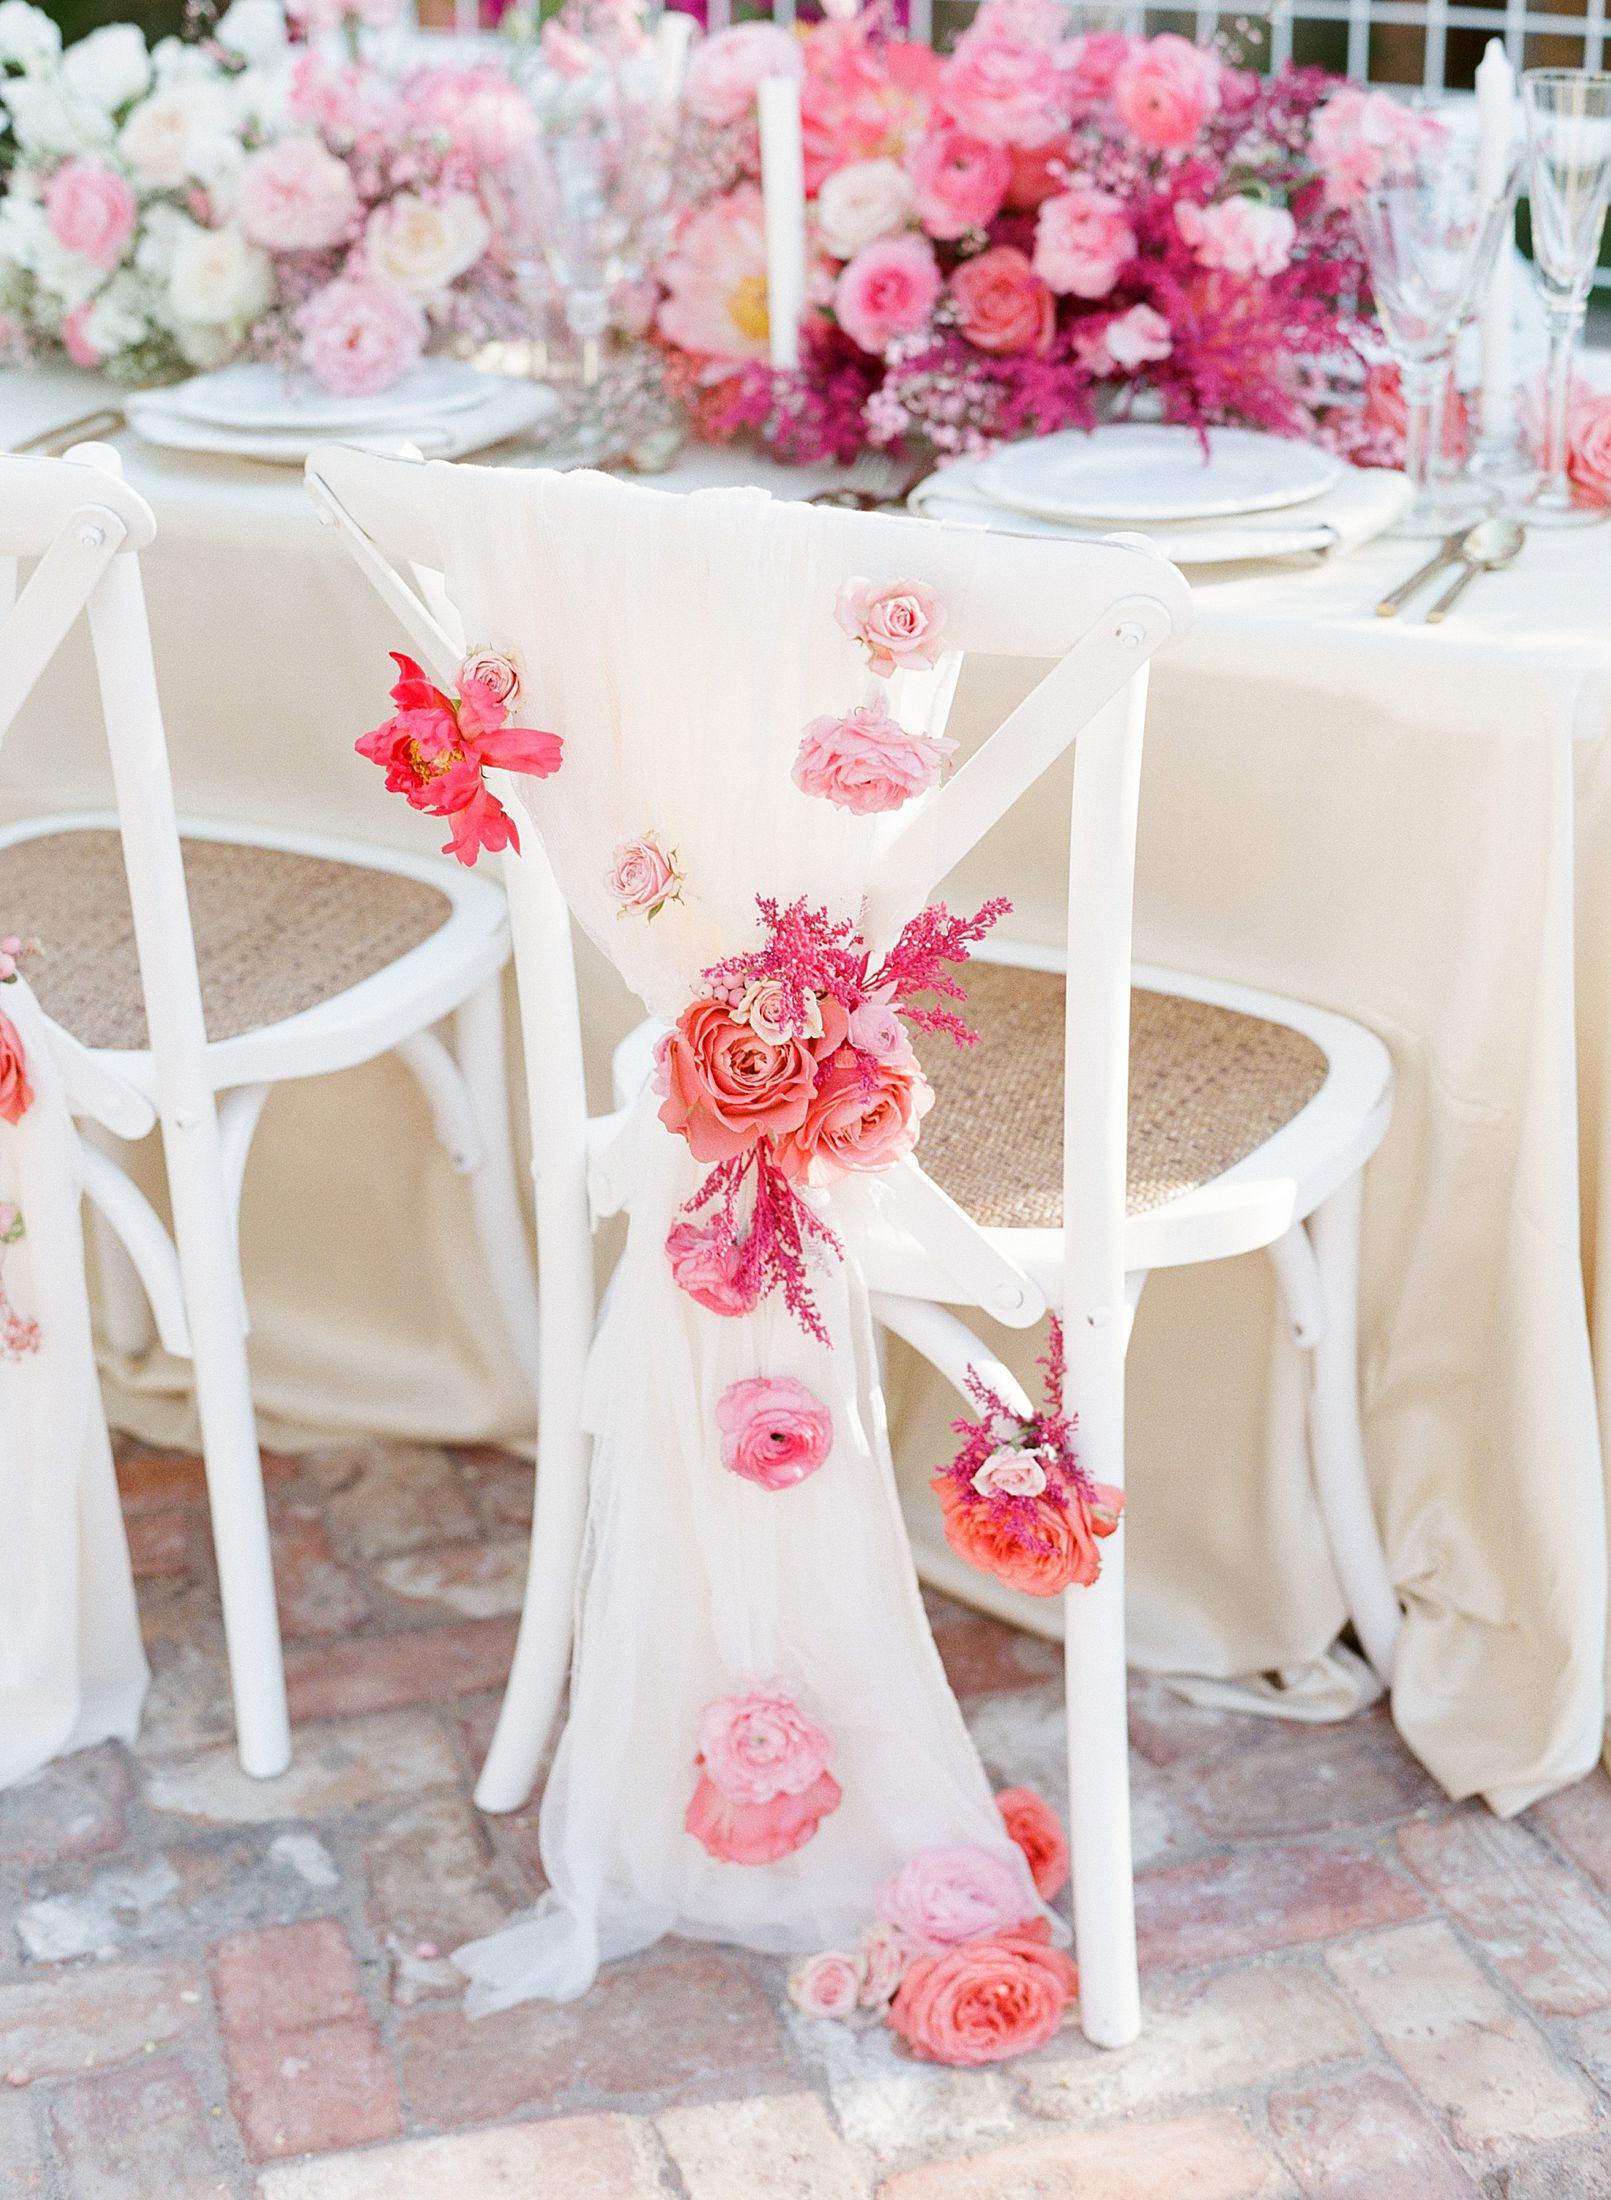 Pink Ombre Wedding Inspiration on Style Me Pretty - Royal Palms Wedding - Scottsdale Wedding - Ashley Baumgartner - Bloom and Blueprint - Wedding Puppies - Bulldog Puppies_0019.jpg